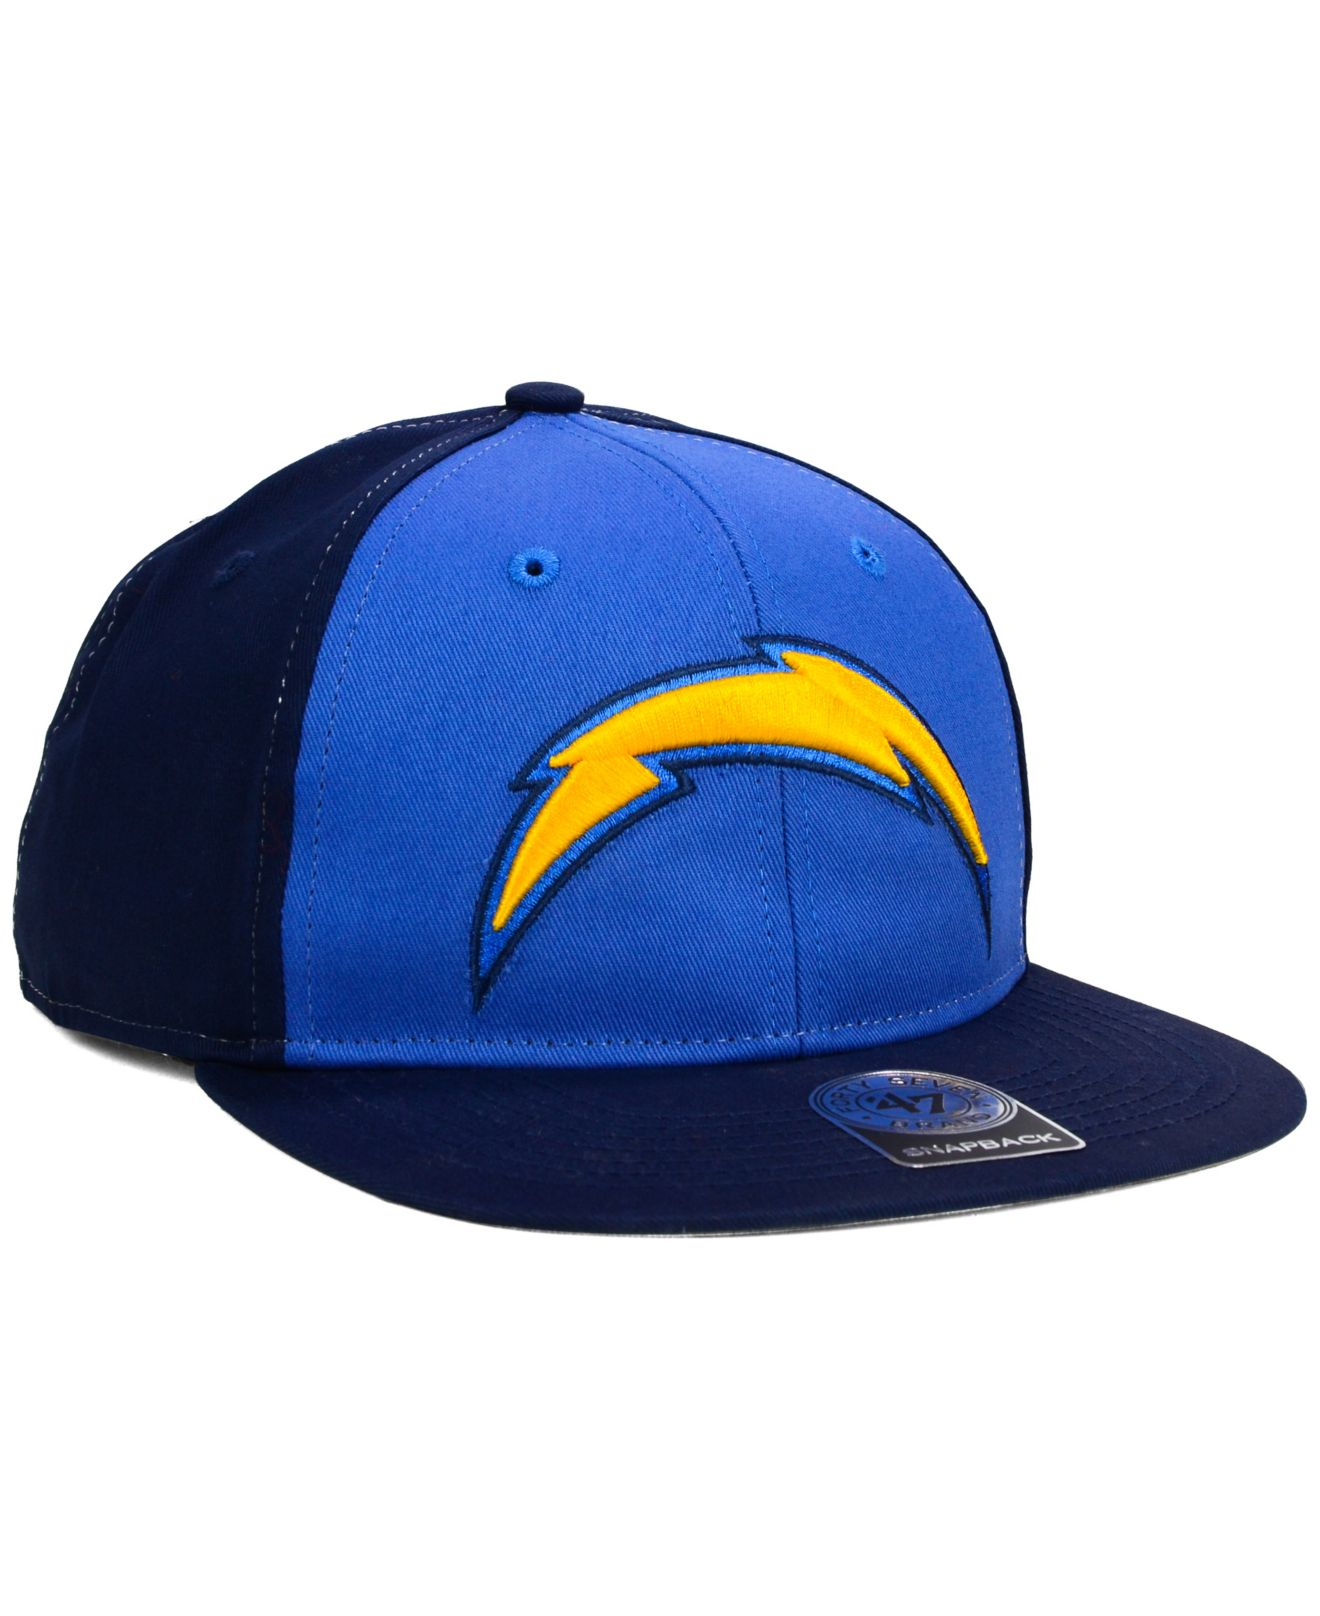 Mens San Diego Chargers 47 Brand Gold Franchise Fitted Hat